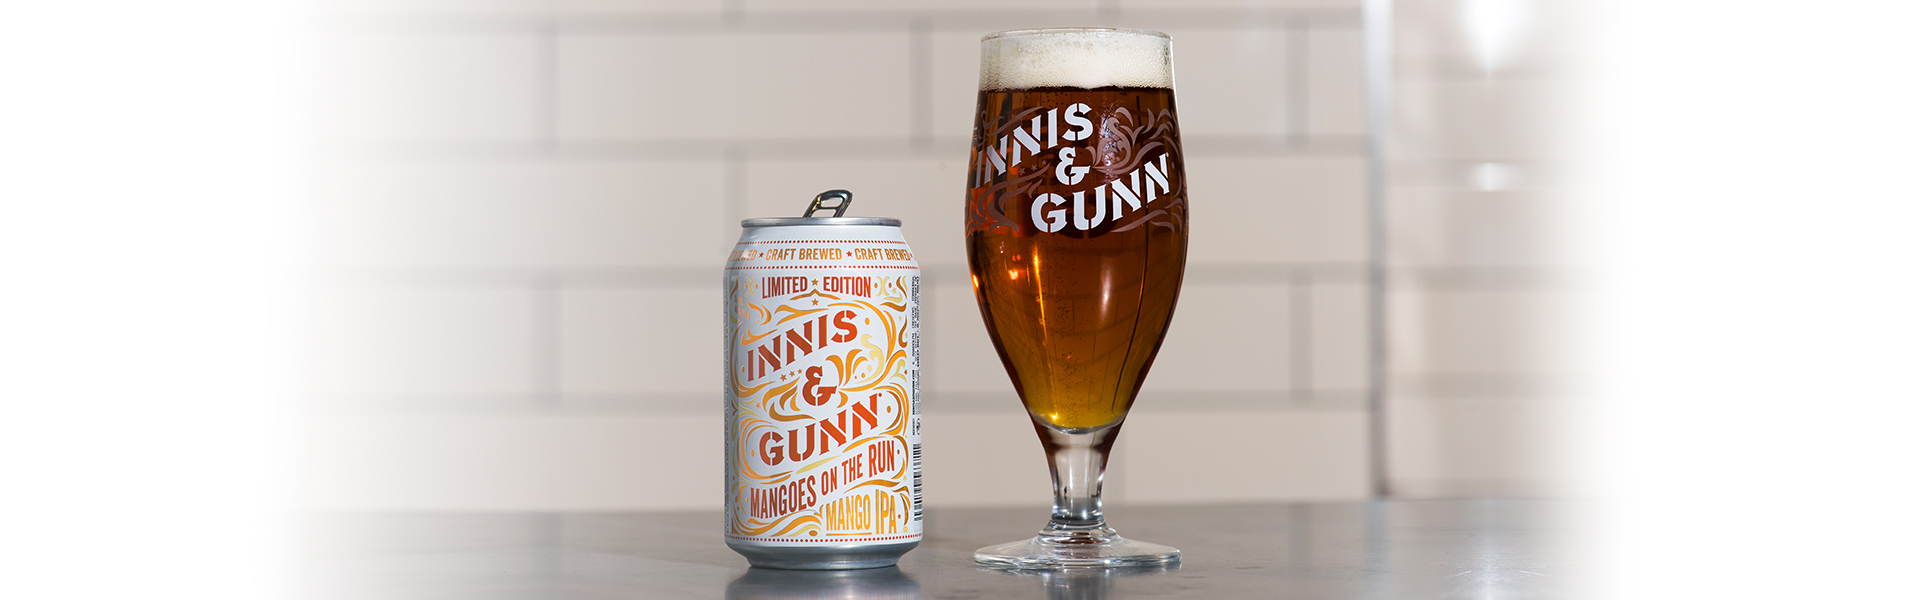 Mangoes on the Run IPA – limiterat sommarsläpp från Innis & Gunn